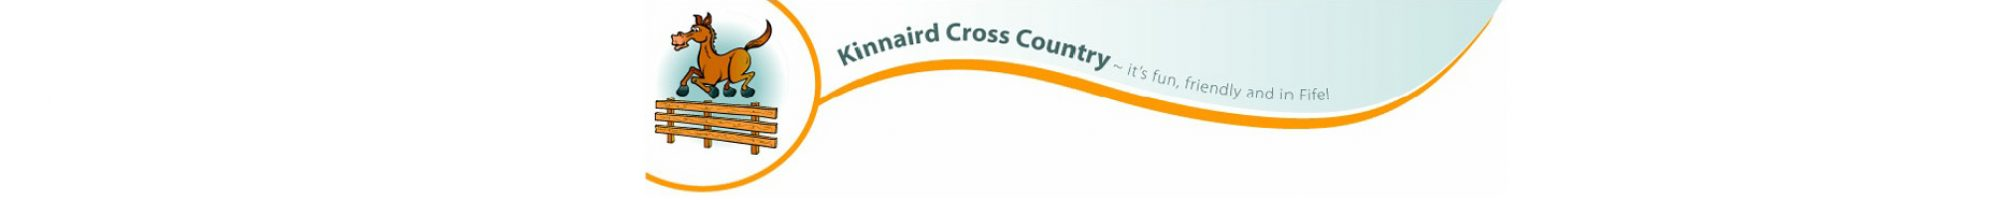 Kinnaird Cross Country